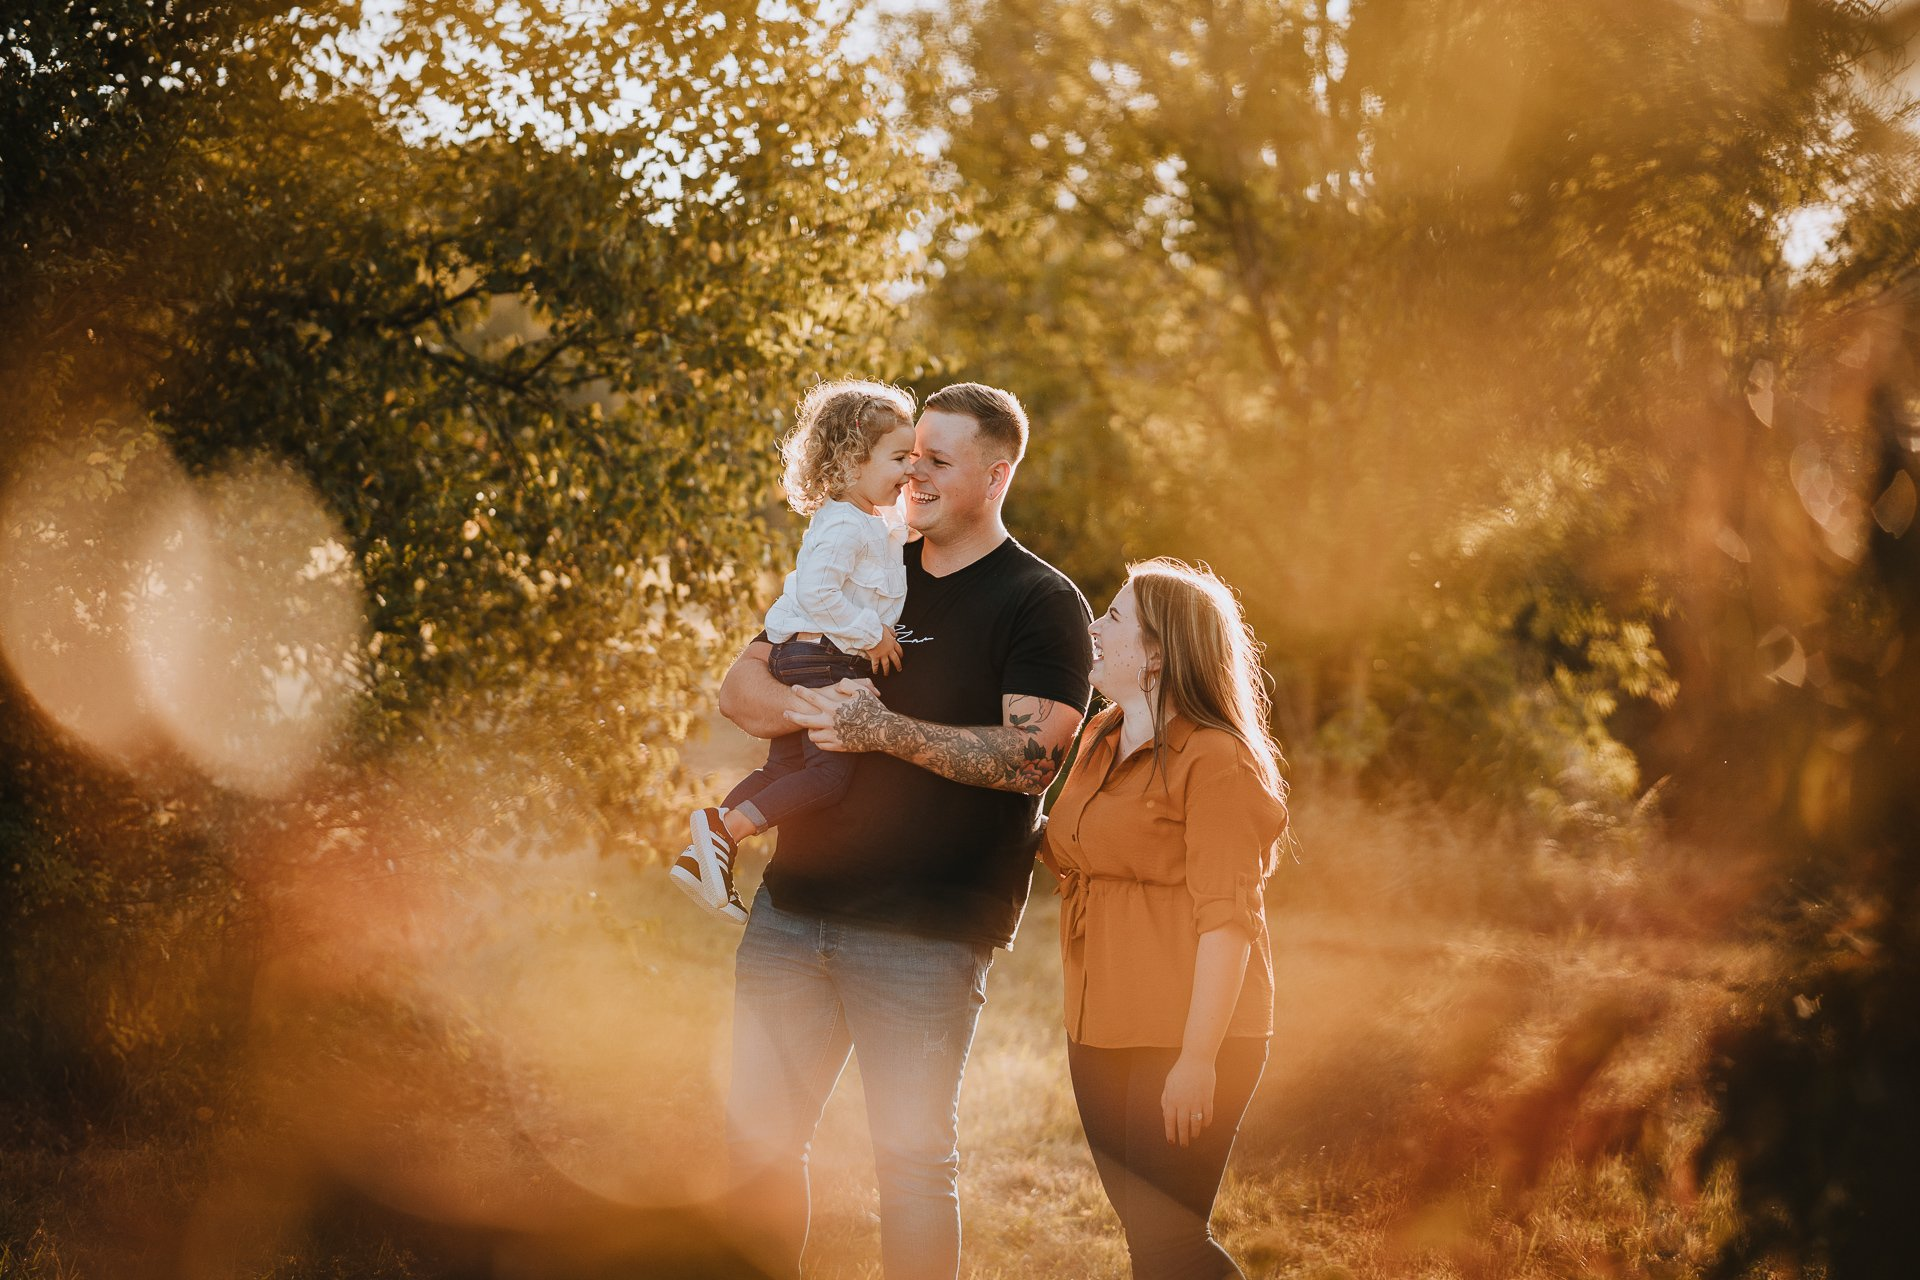 Family laughing in warm autumn evening light at Lullingstone Country Park Kent